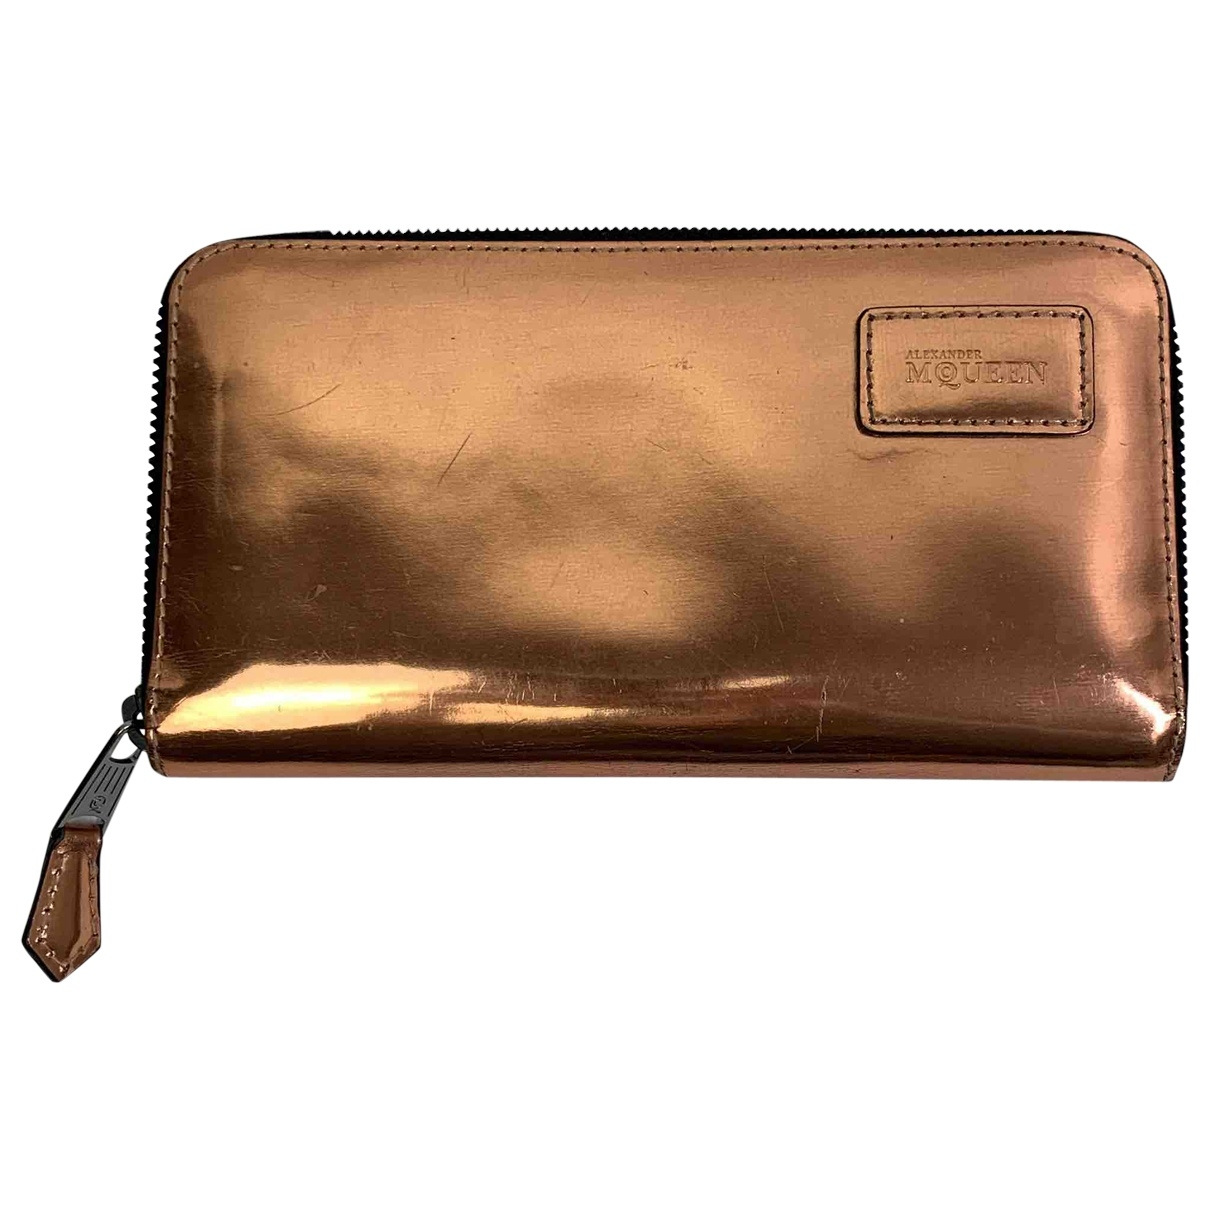 Alexander Mcqueen \N Metallic Patent leather wallet for Women \N